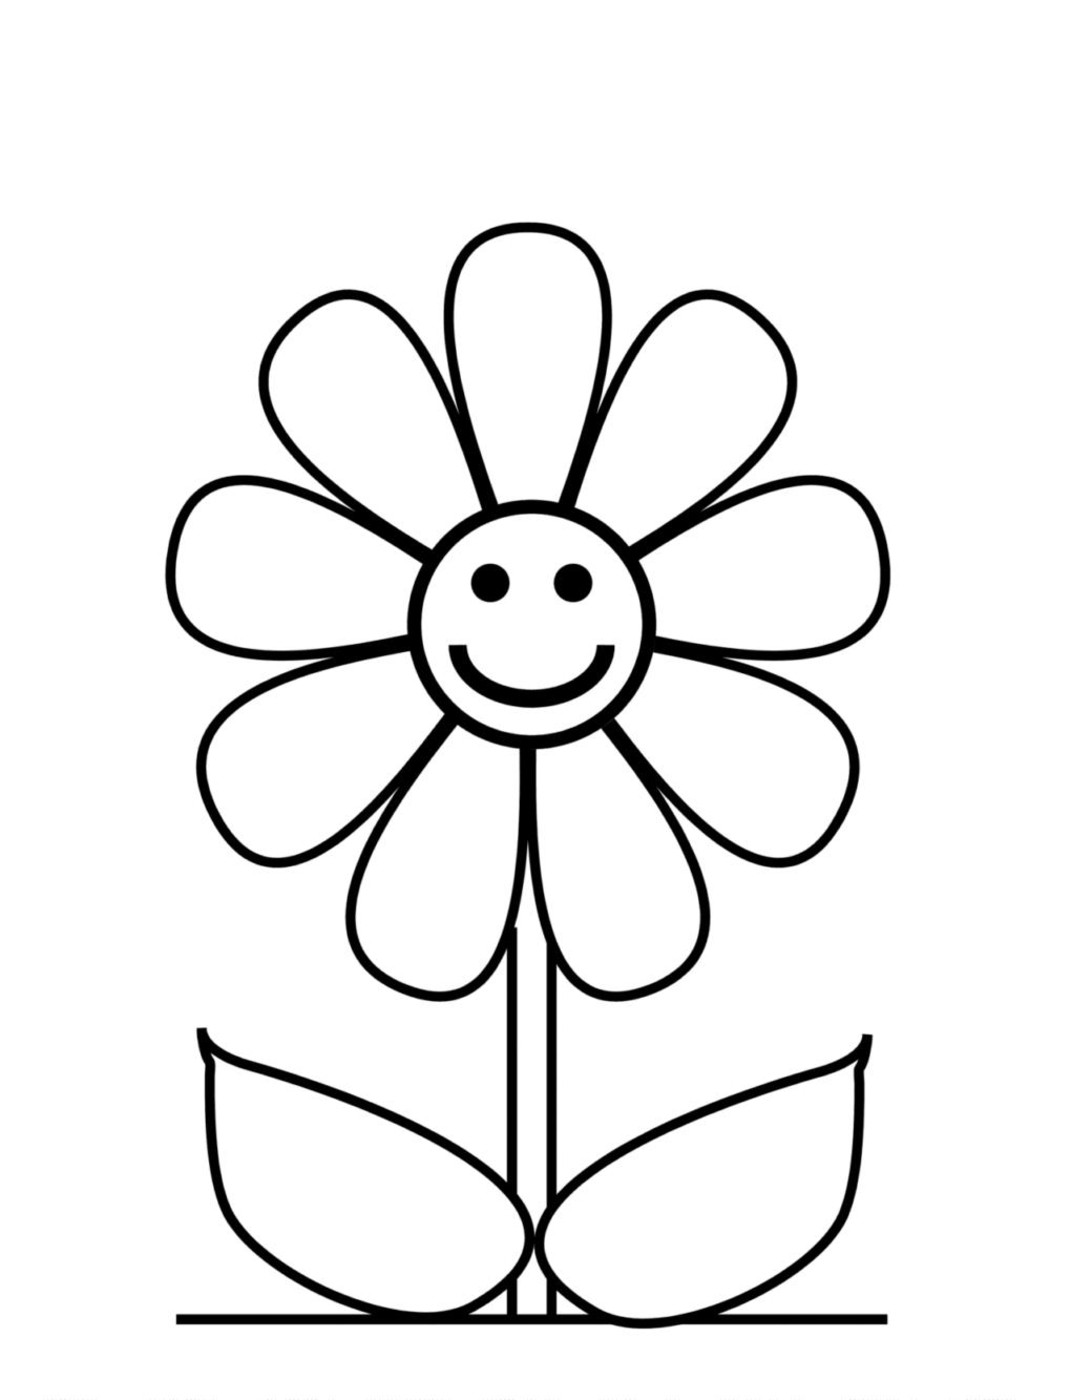 colouring page of flowers bouquet of flowers coloring pages for childrens printable colouring flowers page of